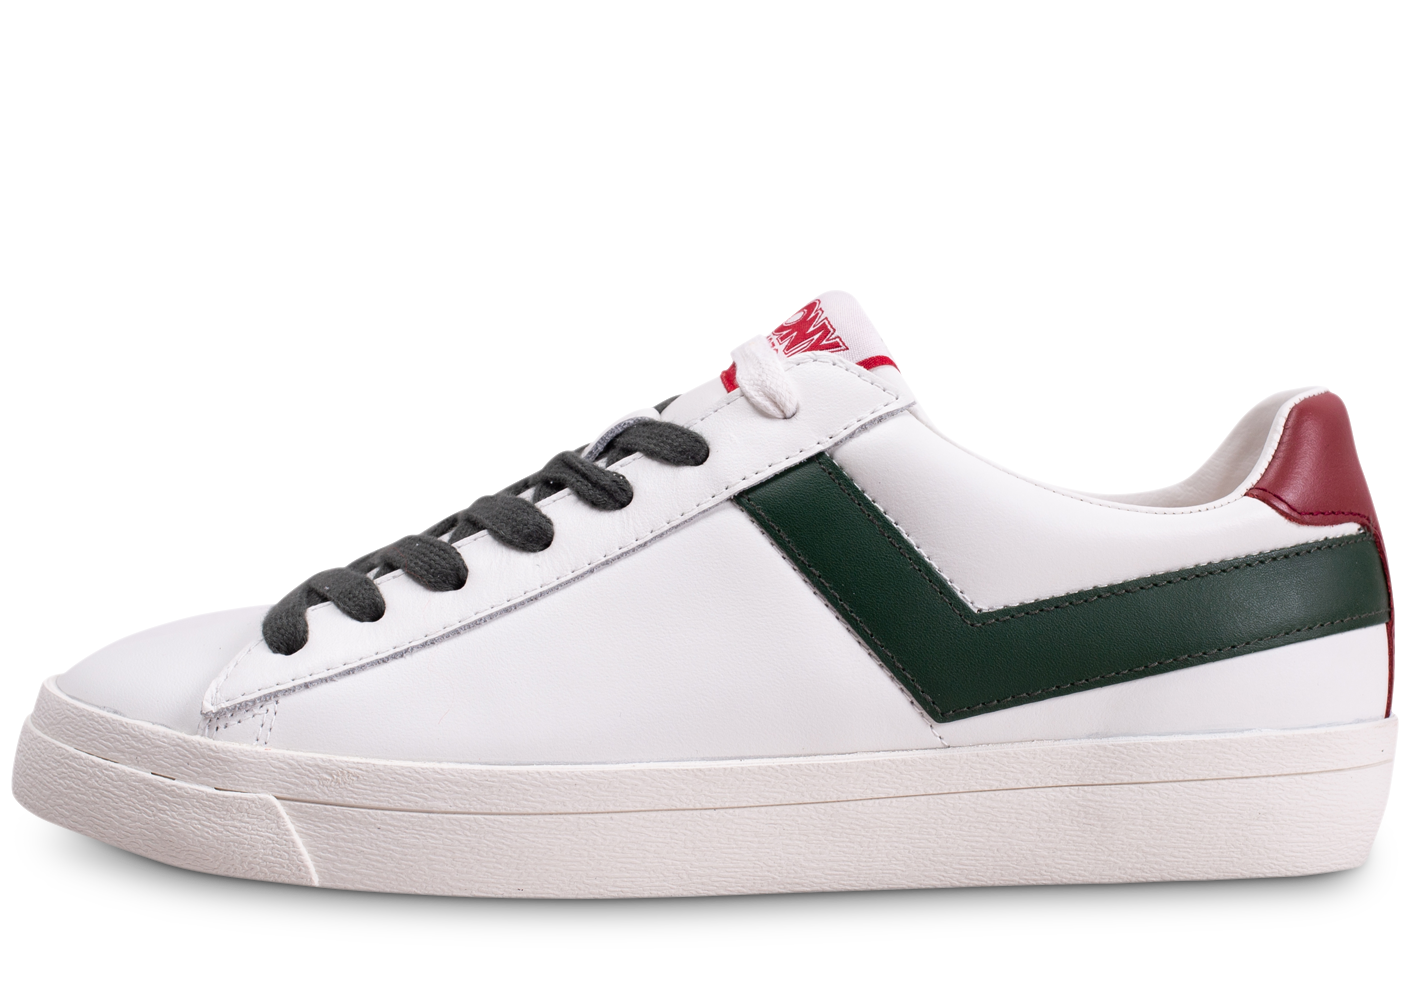 Pony Homme Topstar Blanc Rouge Vert Baskets